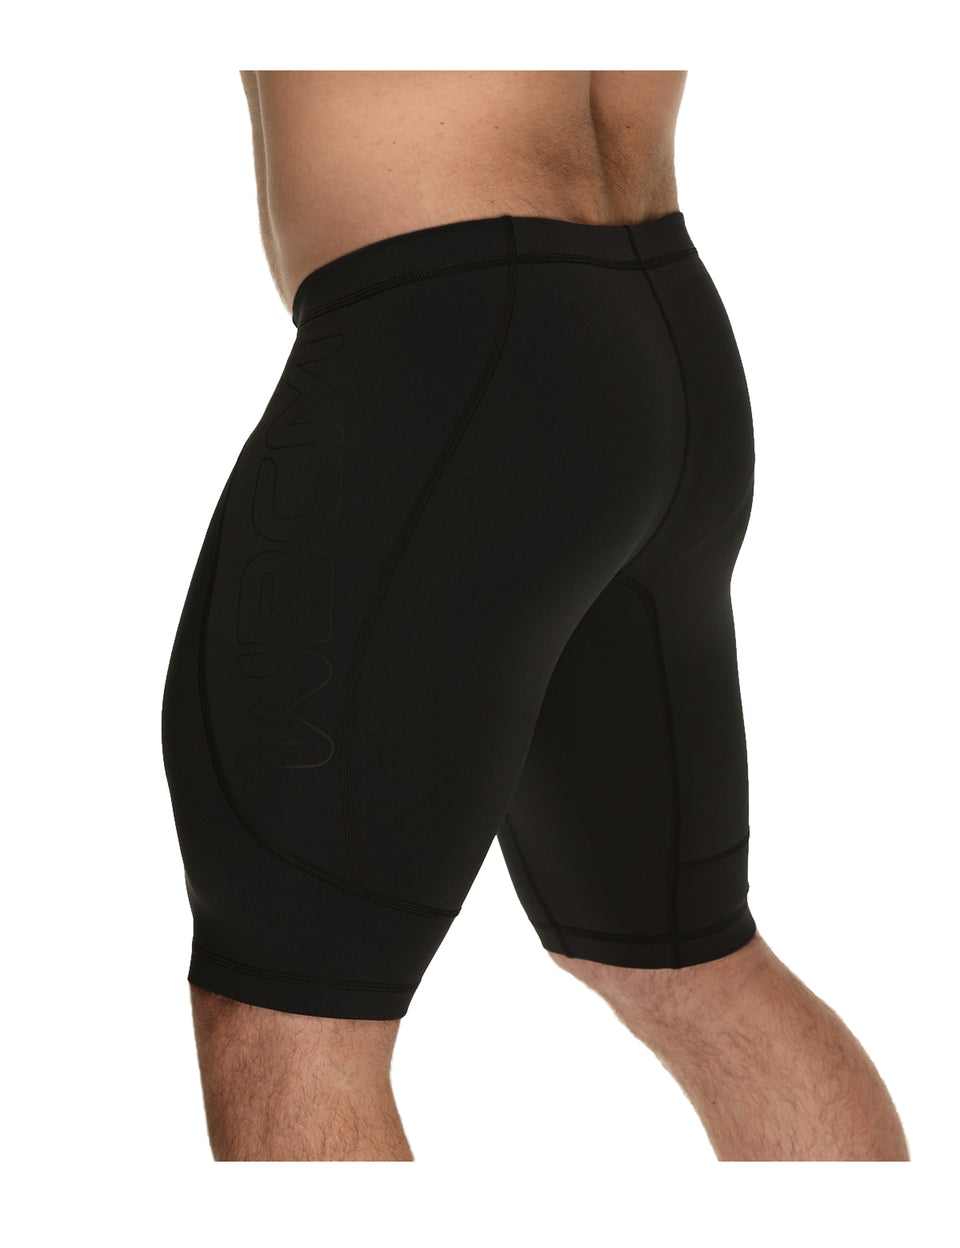 Men's Compression Shorts L-3